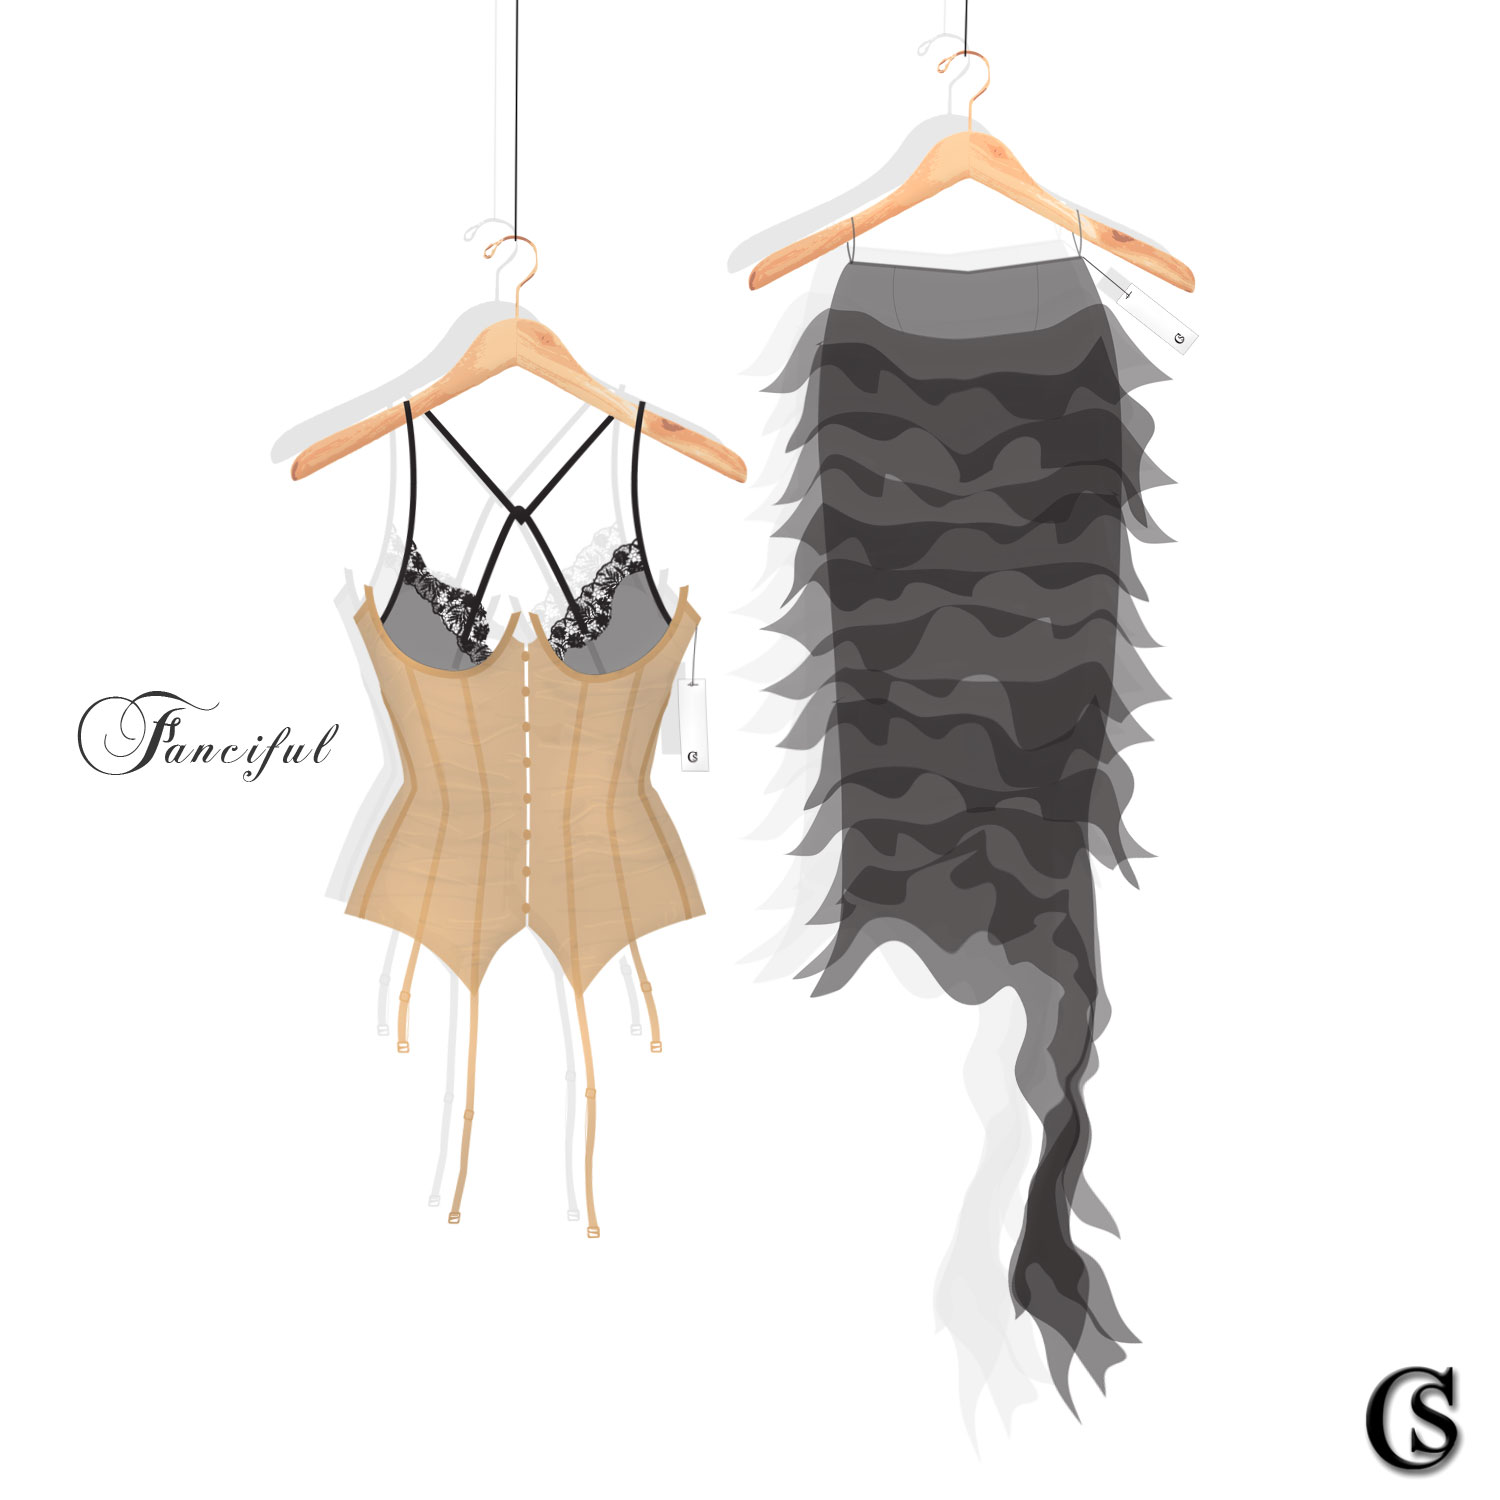 Lingerie design at CHIARIstyle